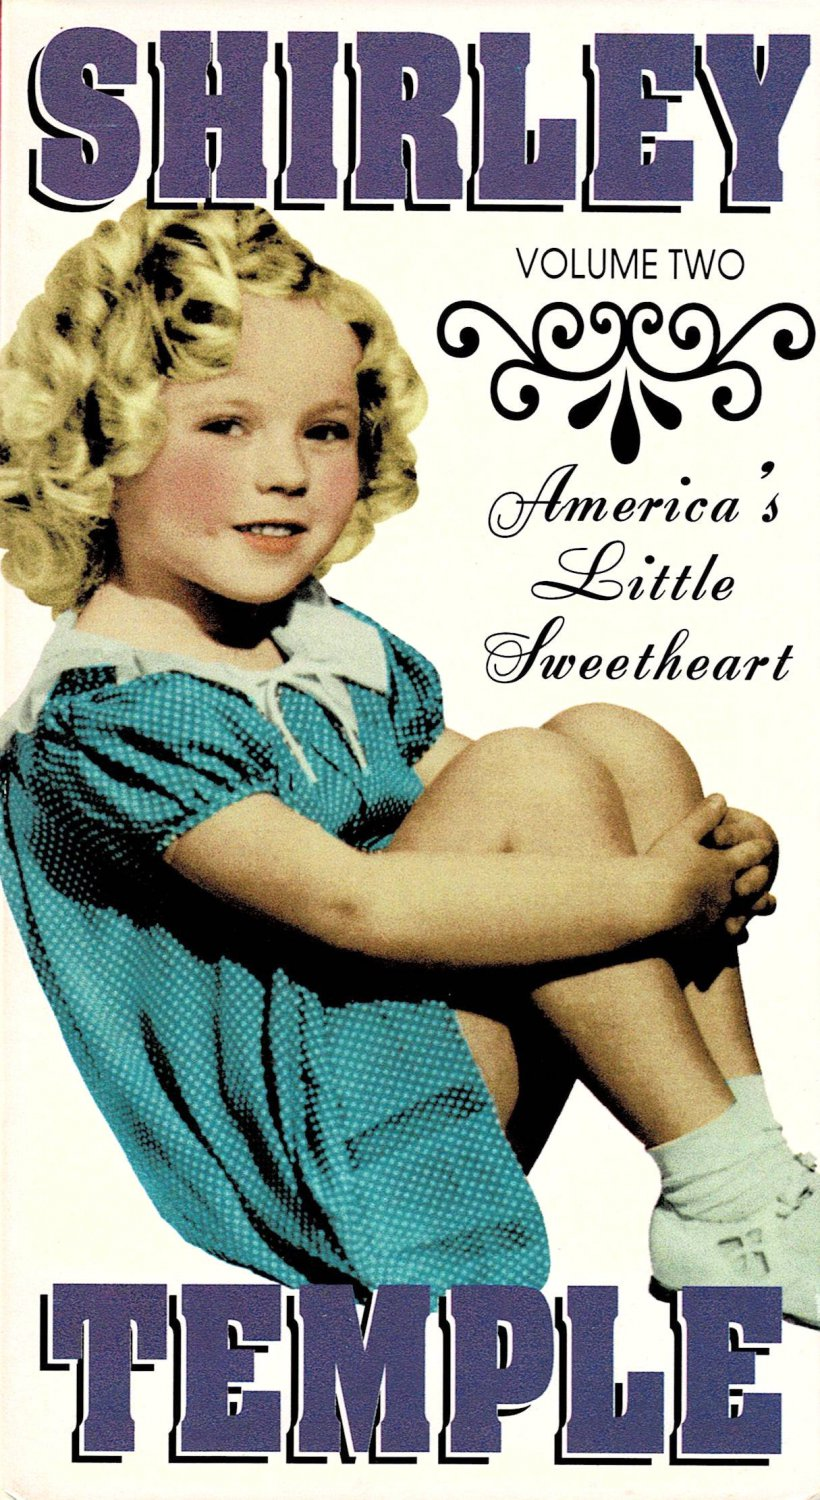 Shirley Temple Volume Two America's Little Sweetheart VHS Video